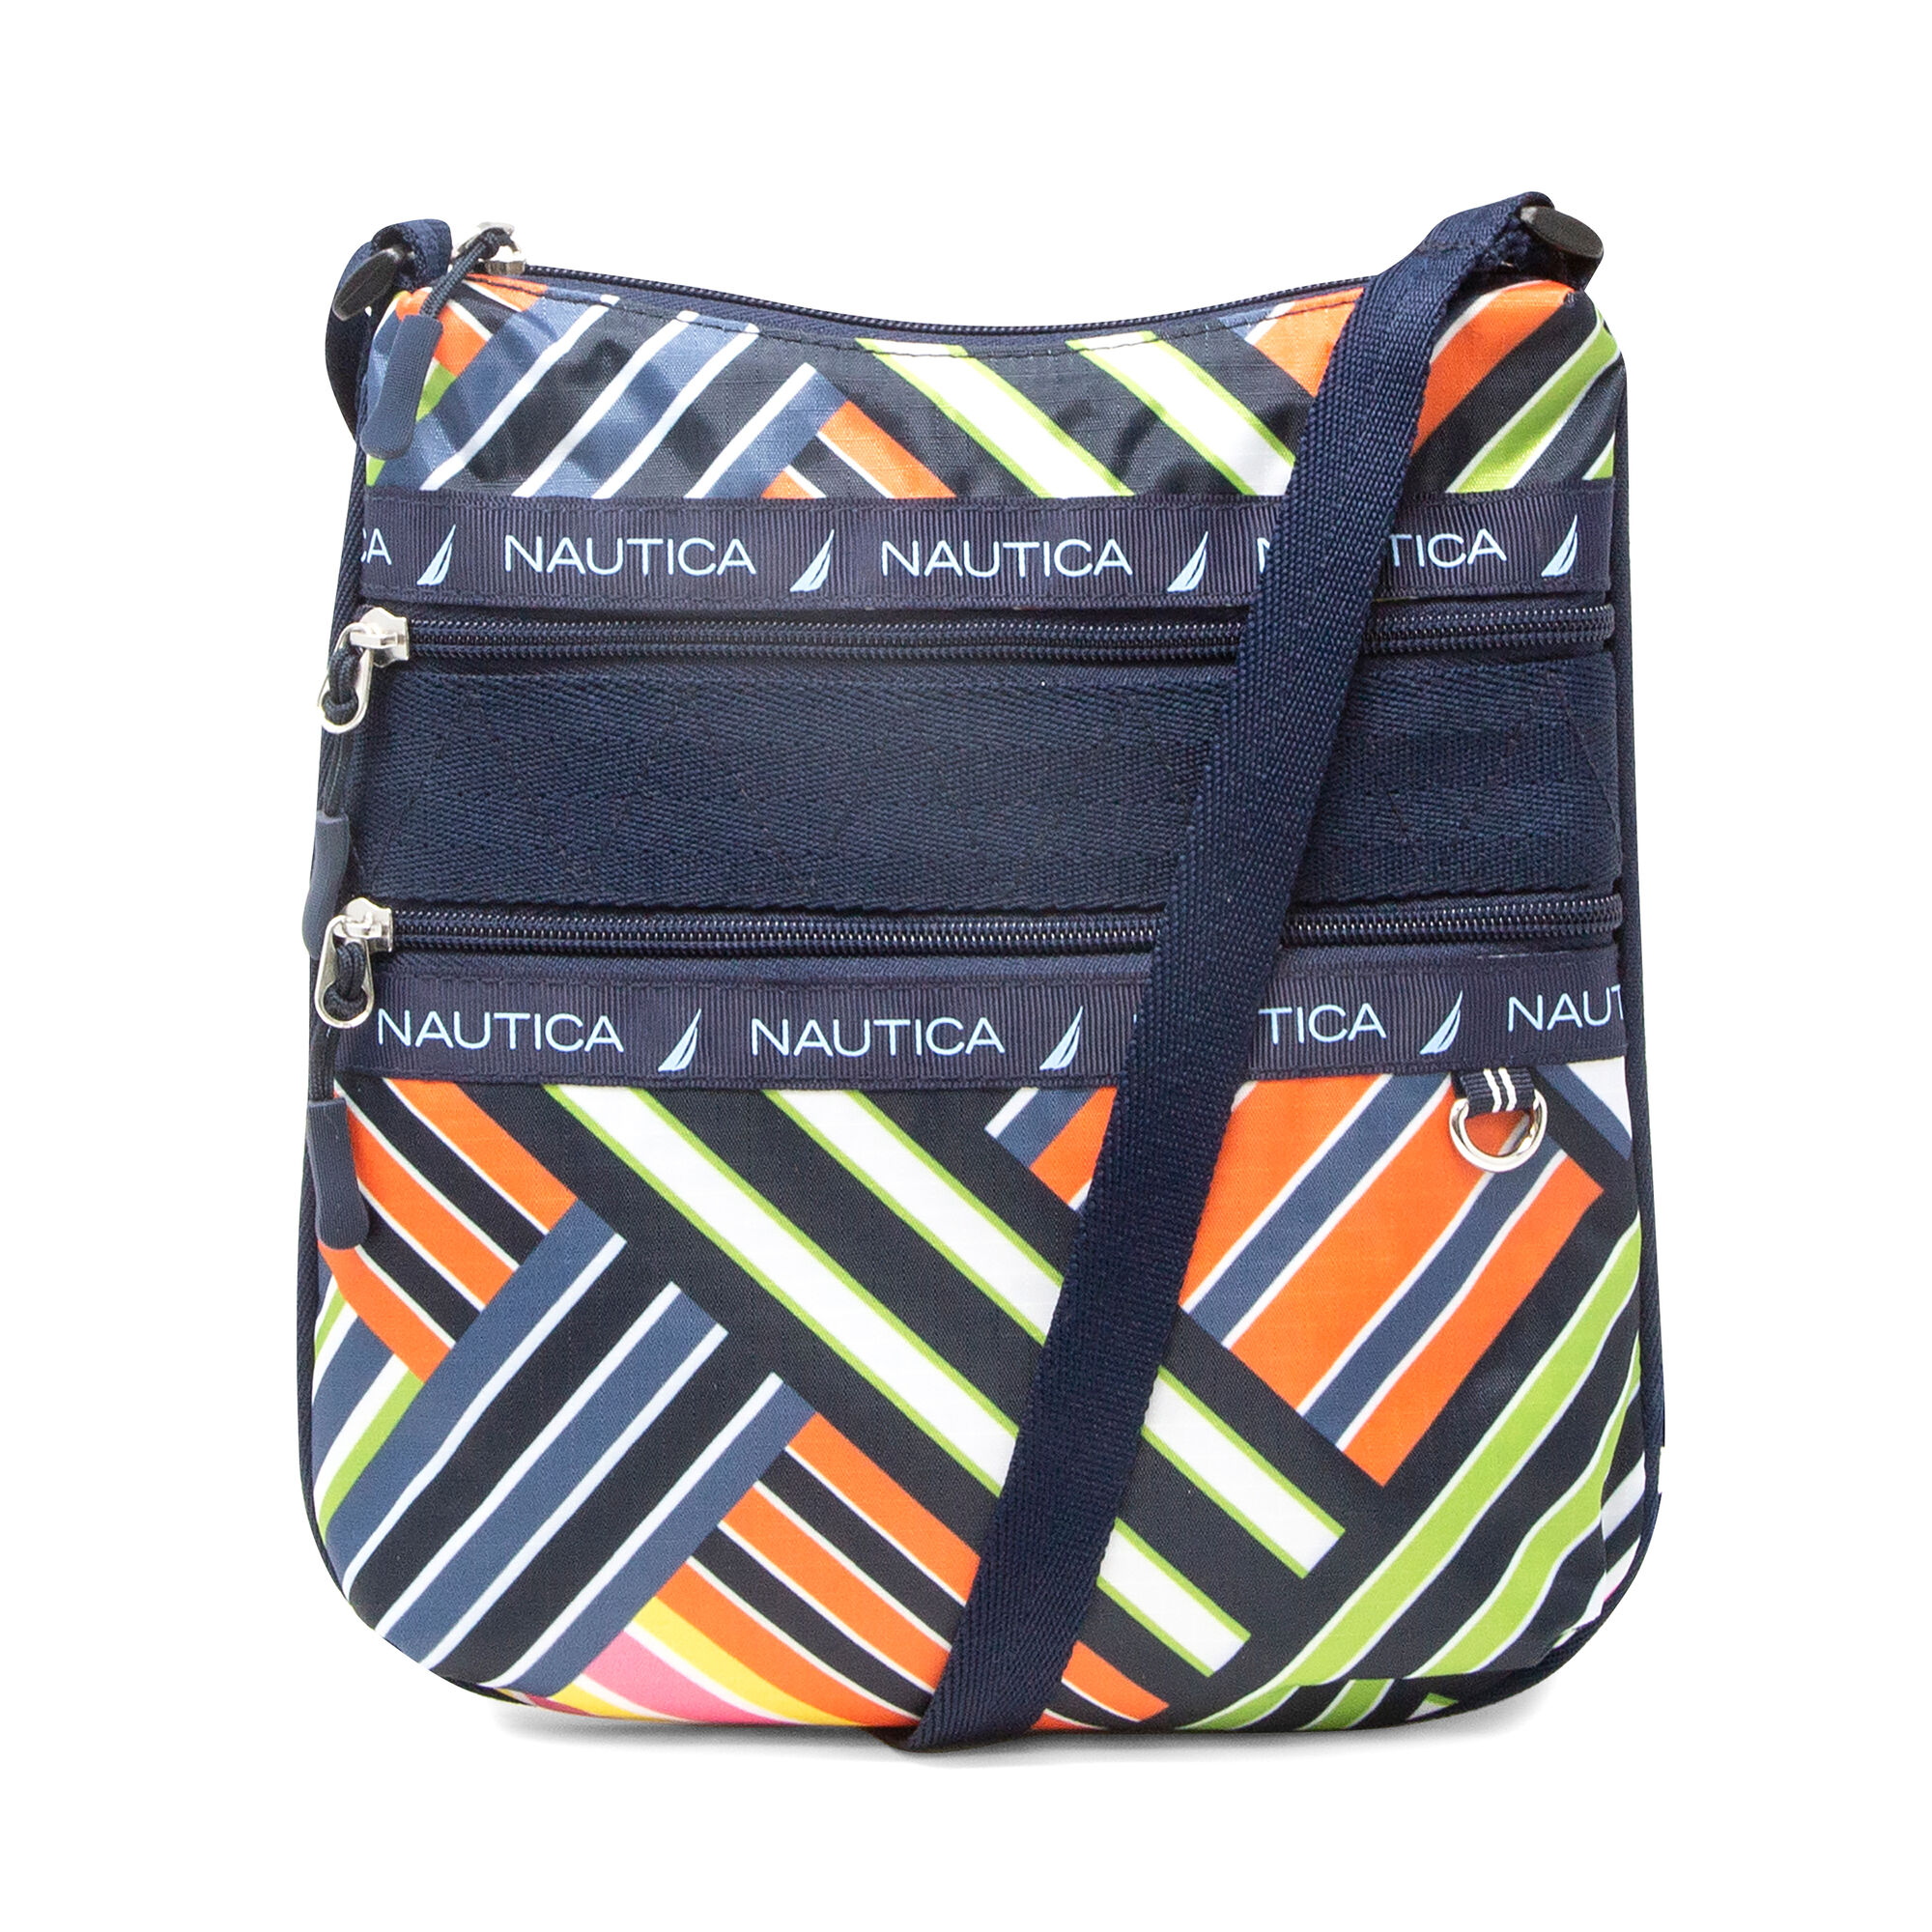 Nautica Banner Stripe Printed Crossbody Bag